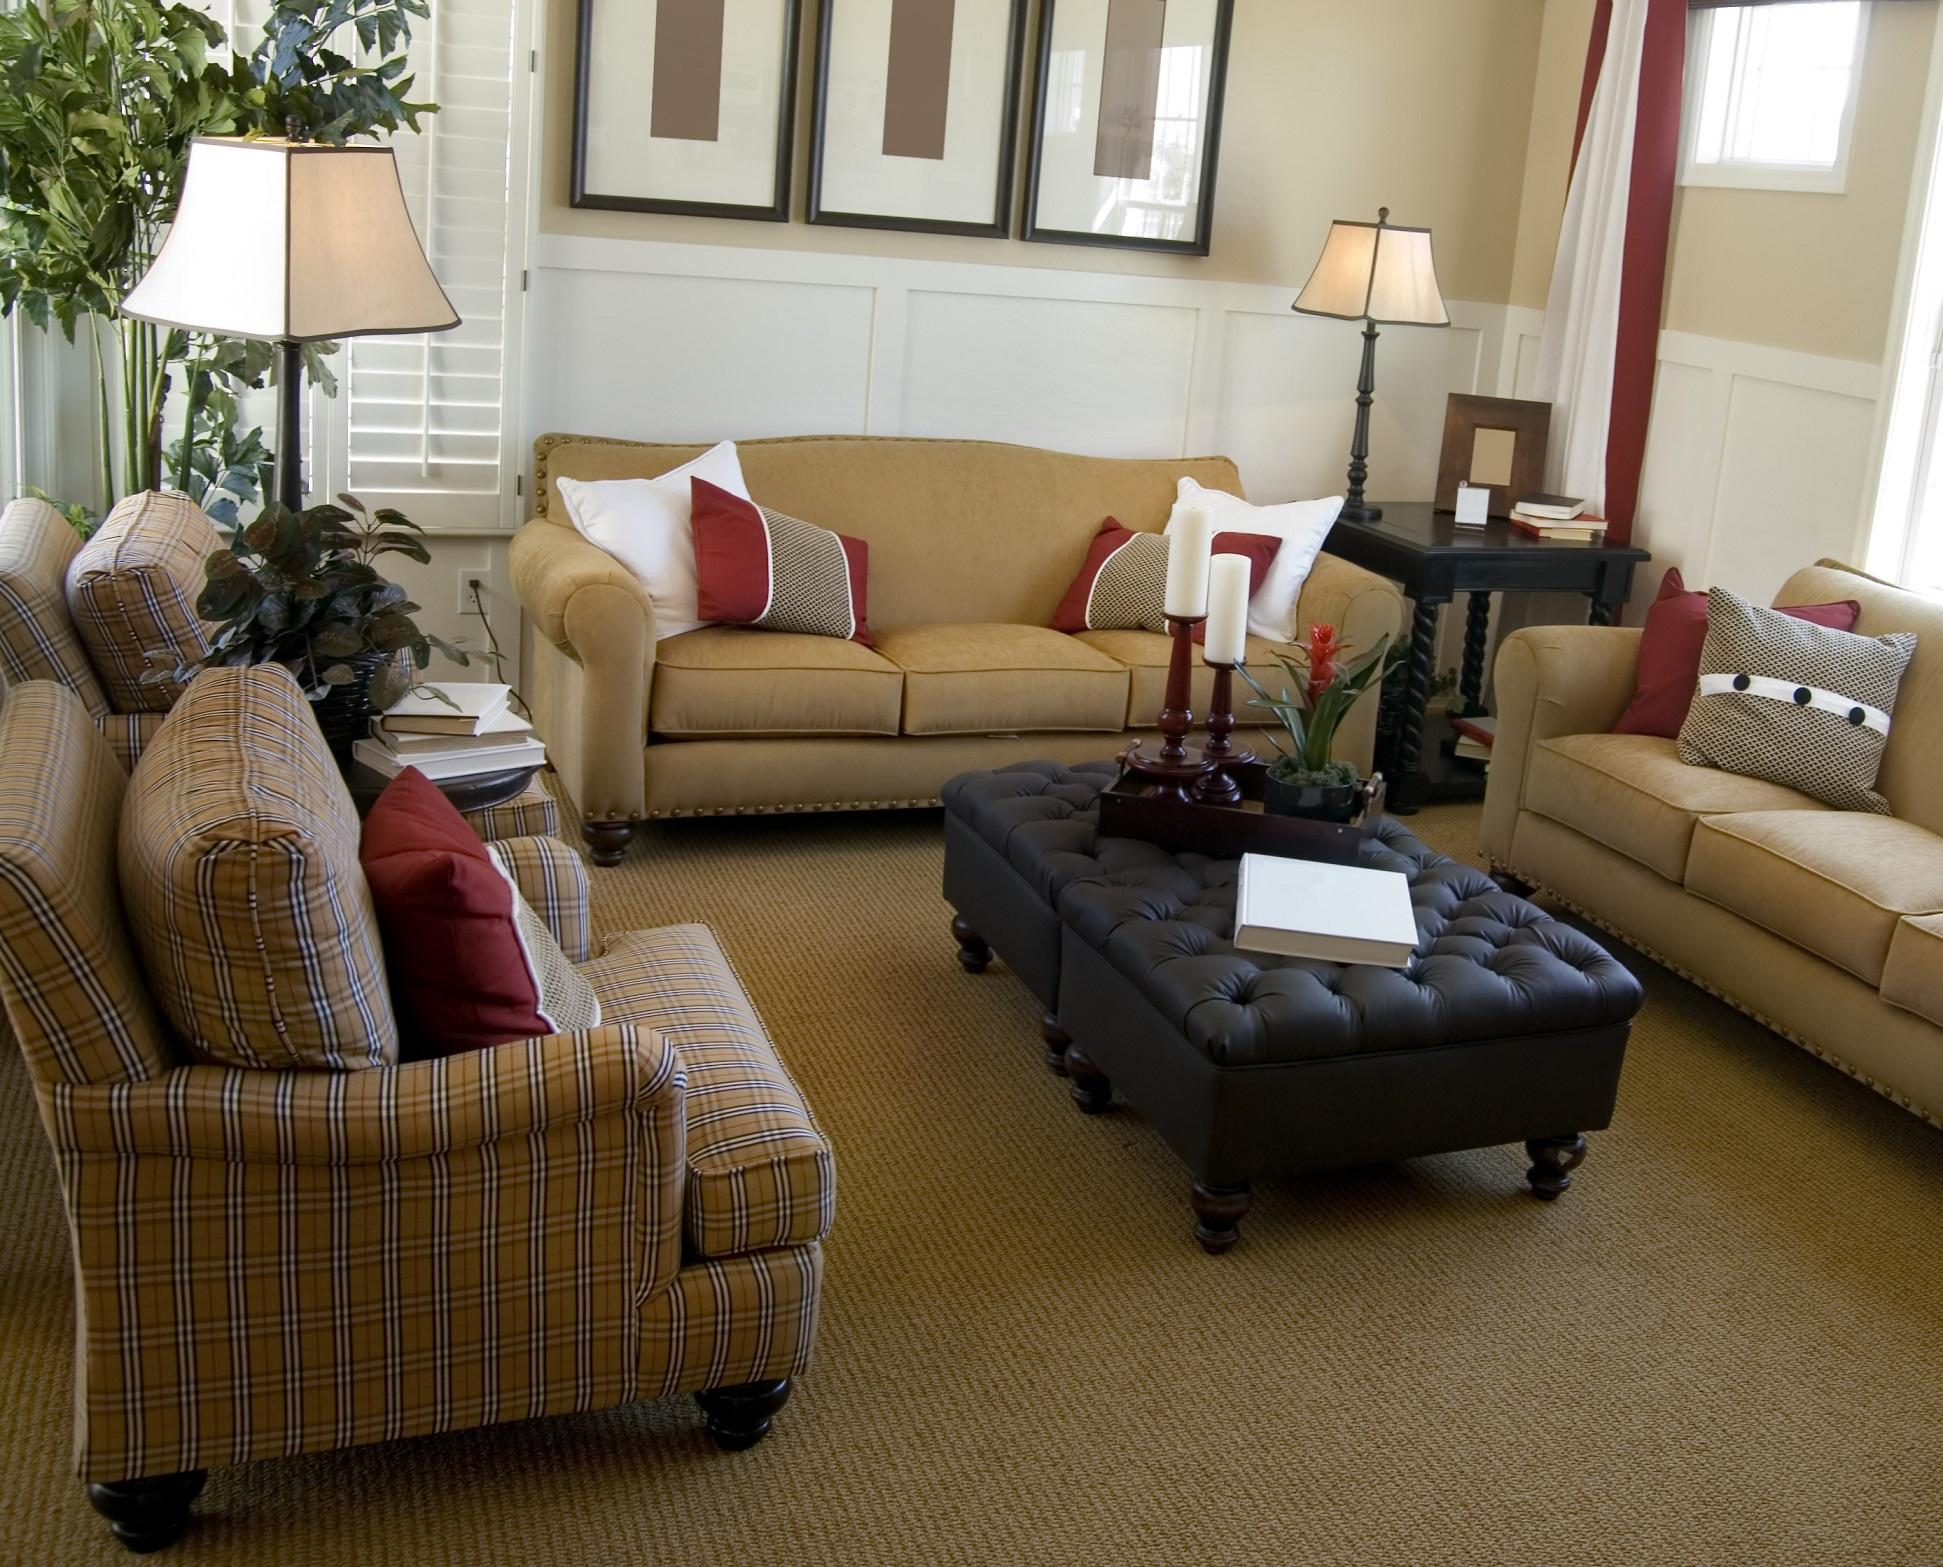 carpet in living room business directory for baldwinsville ny 13027